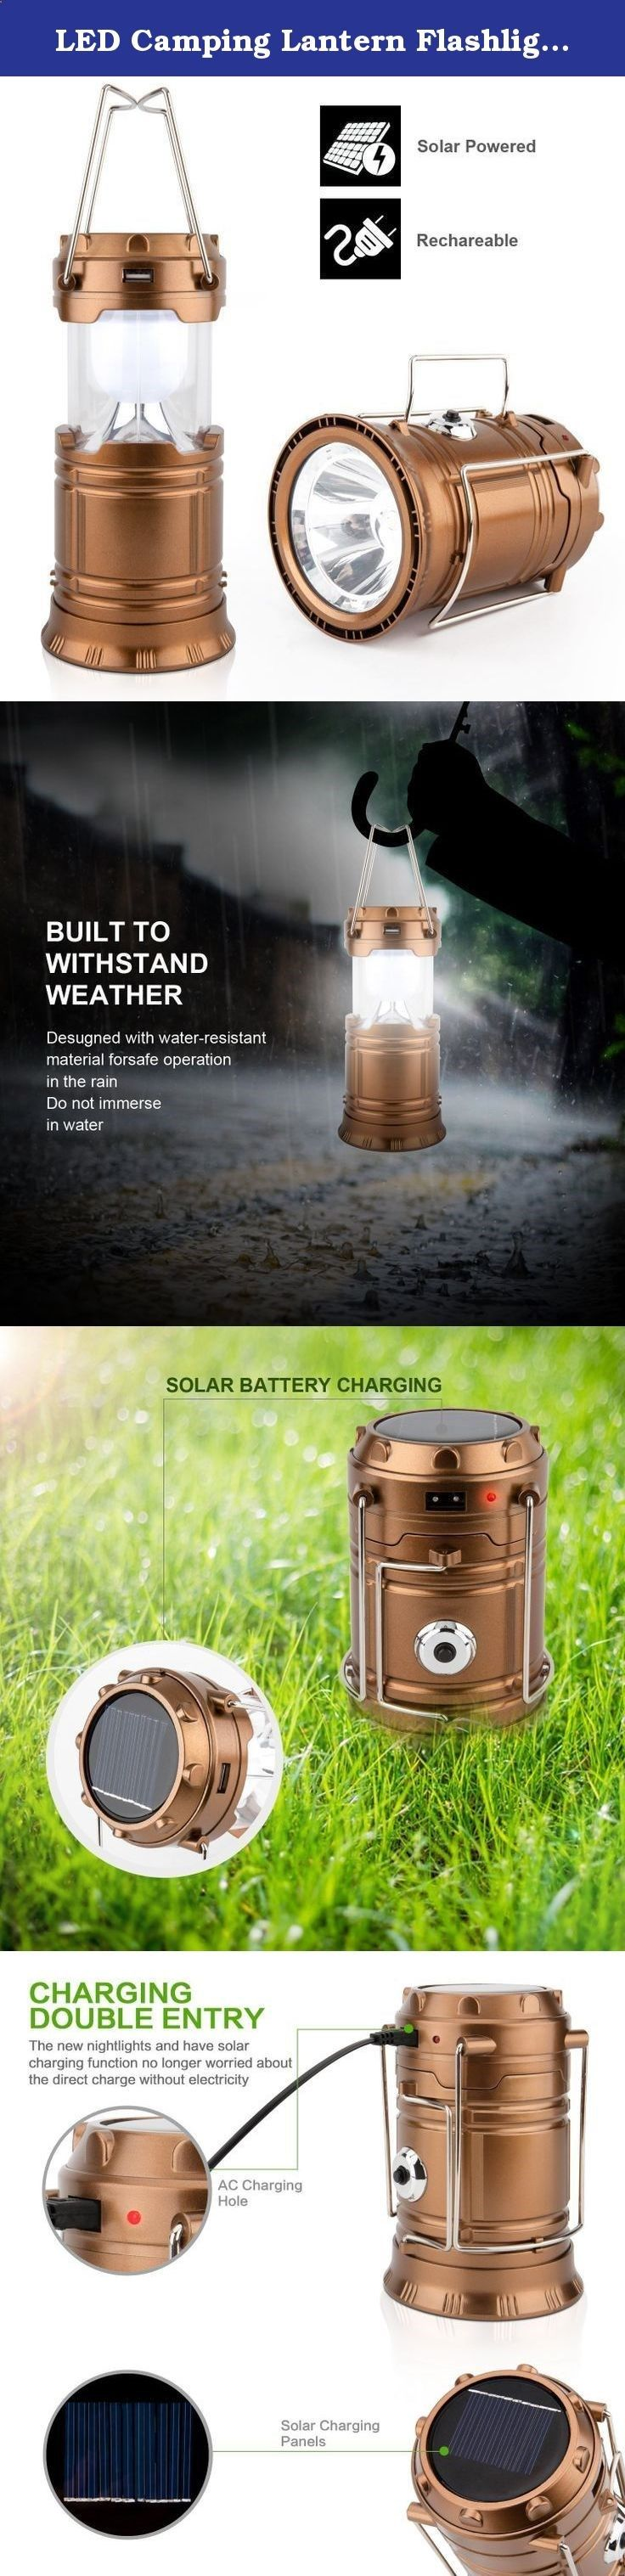 LED Camping Lantern Flashlights - Hurricane Emergency Tent Light - Backpacking, Hiking, Fishing,  Outdoor Lighting Bug Out Bag Camping Equipment | Portable, Compact,  Water Resistant Gift (Golden). Specification 1.TWO Power Supply: Environmental friendly solar powered charging,DC 5V(power). 2.MULTIPURPOSE:Suitable for indoors  outdoors, Hiking, Camping,Fishing,Emergencies, Hurricanes, Outages,Backpacking. 3.The lamp is collapsible and portable, offering you convenience when you need it...